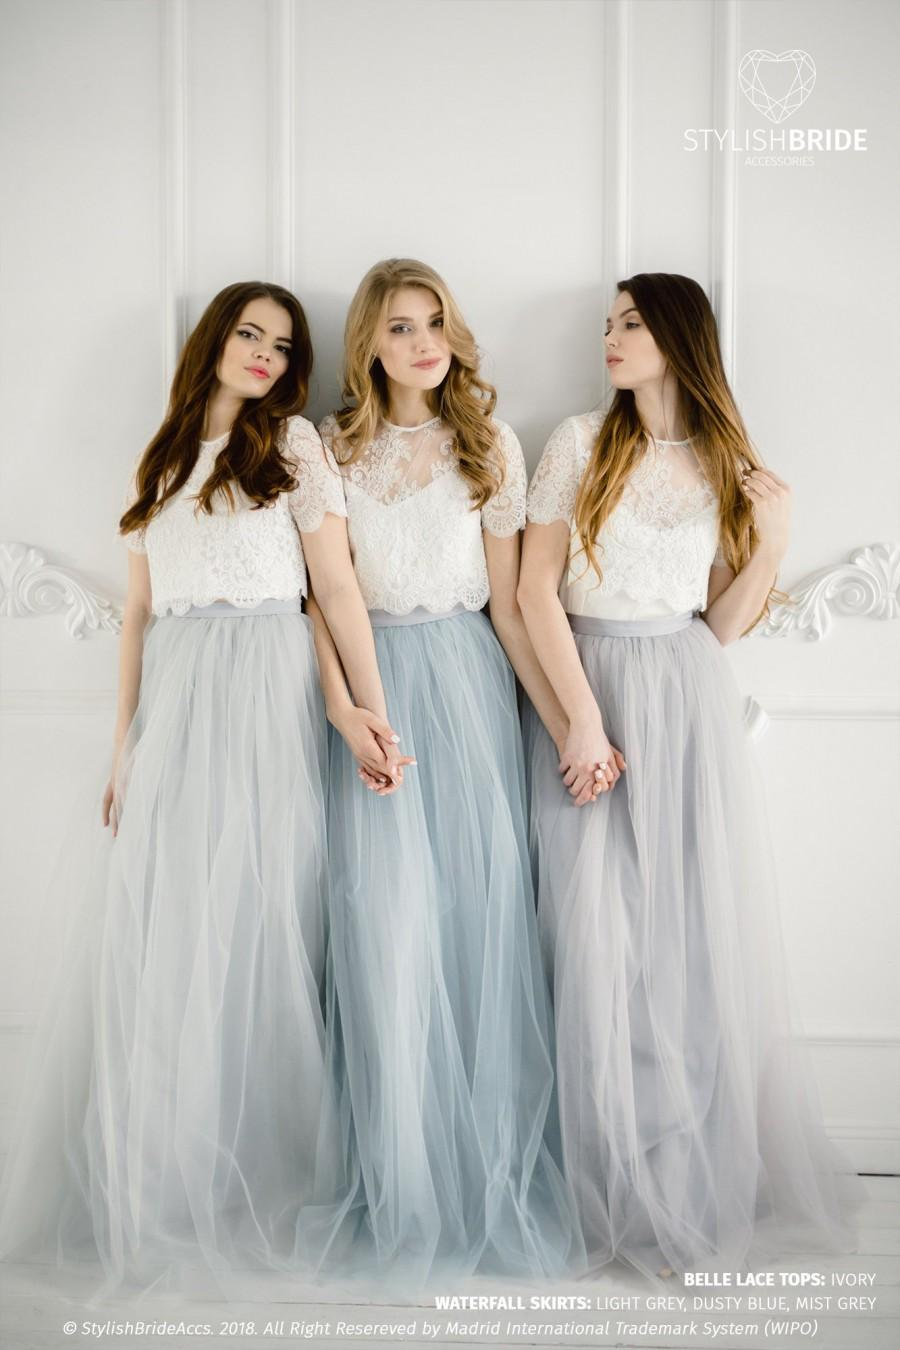 Wedding - Grey Blue Palette Bridesmaids Belle Lace Dress, Long Grey Dusty Blue Waterfall Bridesmaids Skirt , Grey Engagement Prom Dresses Plus Size